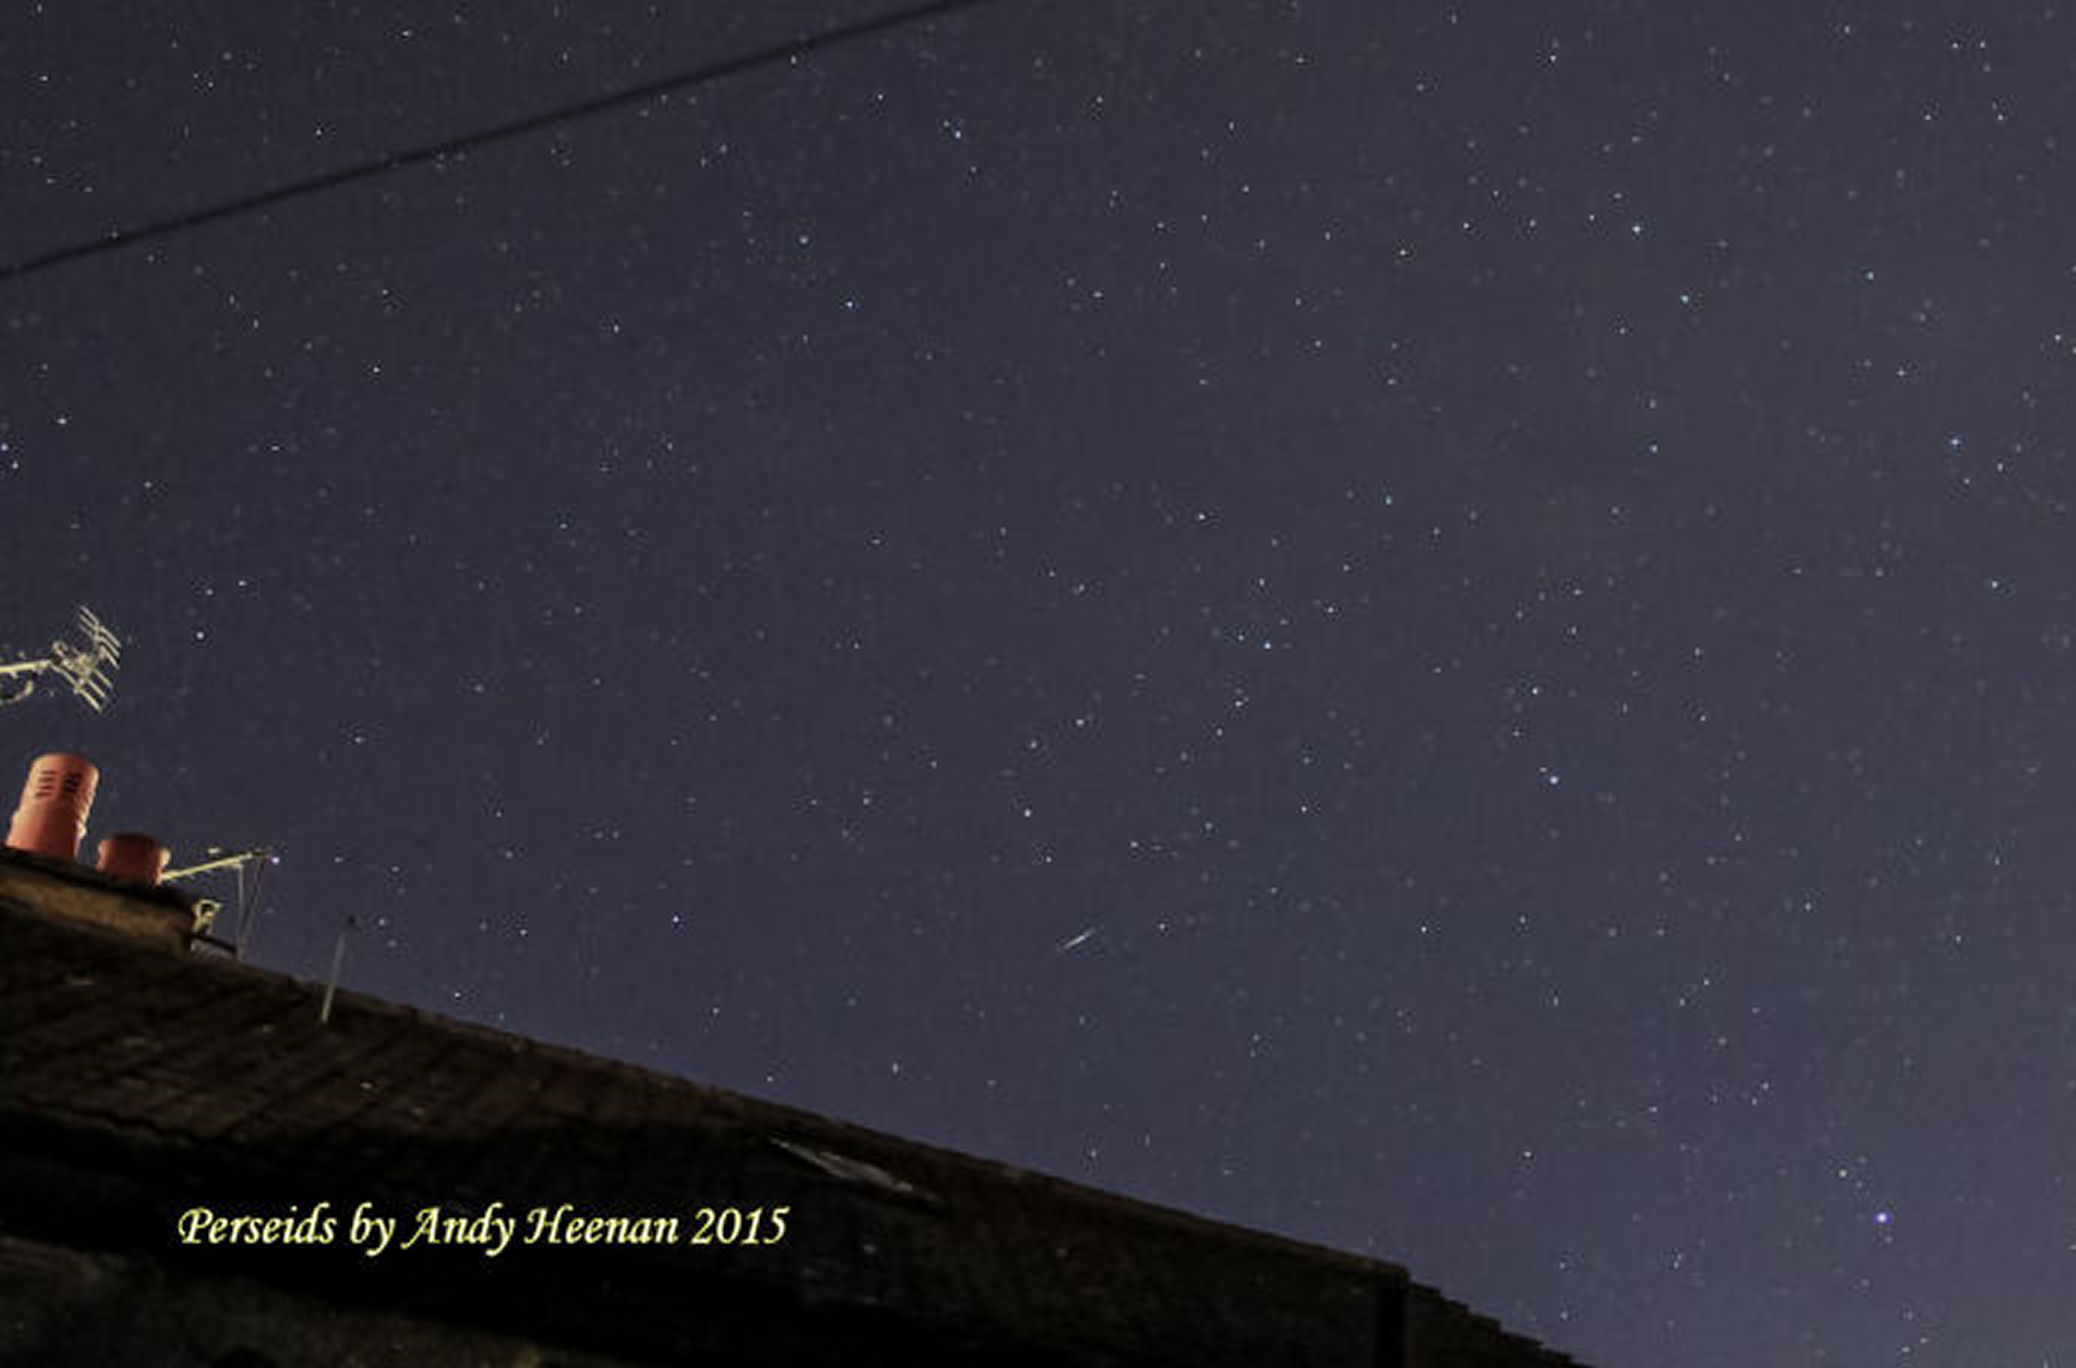 More Perseids By Andy Heenanan. f/3.5.  ISO 3200 15 second exposure